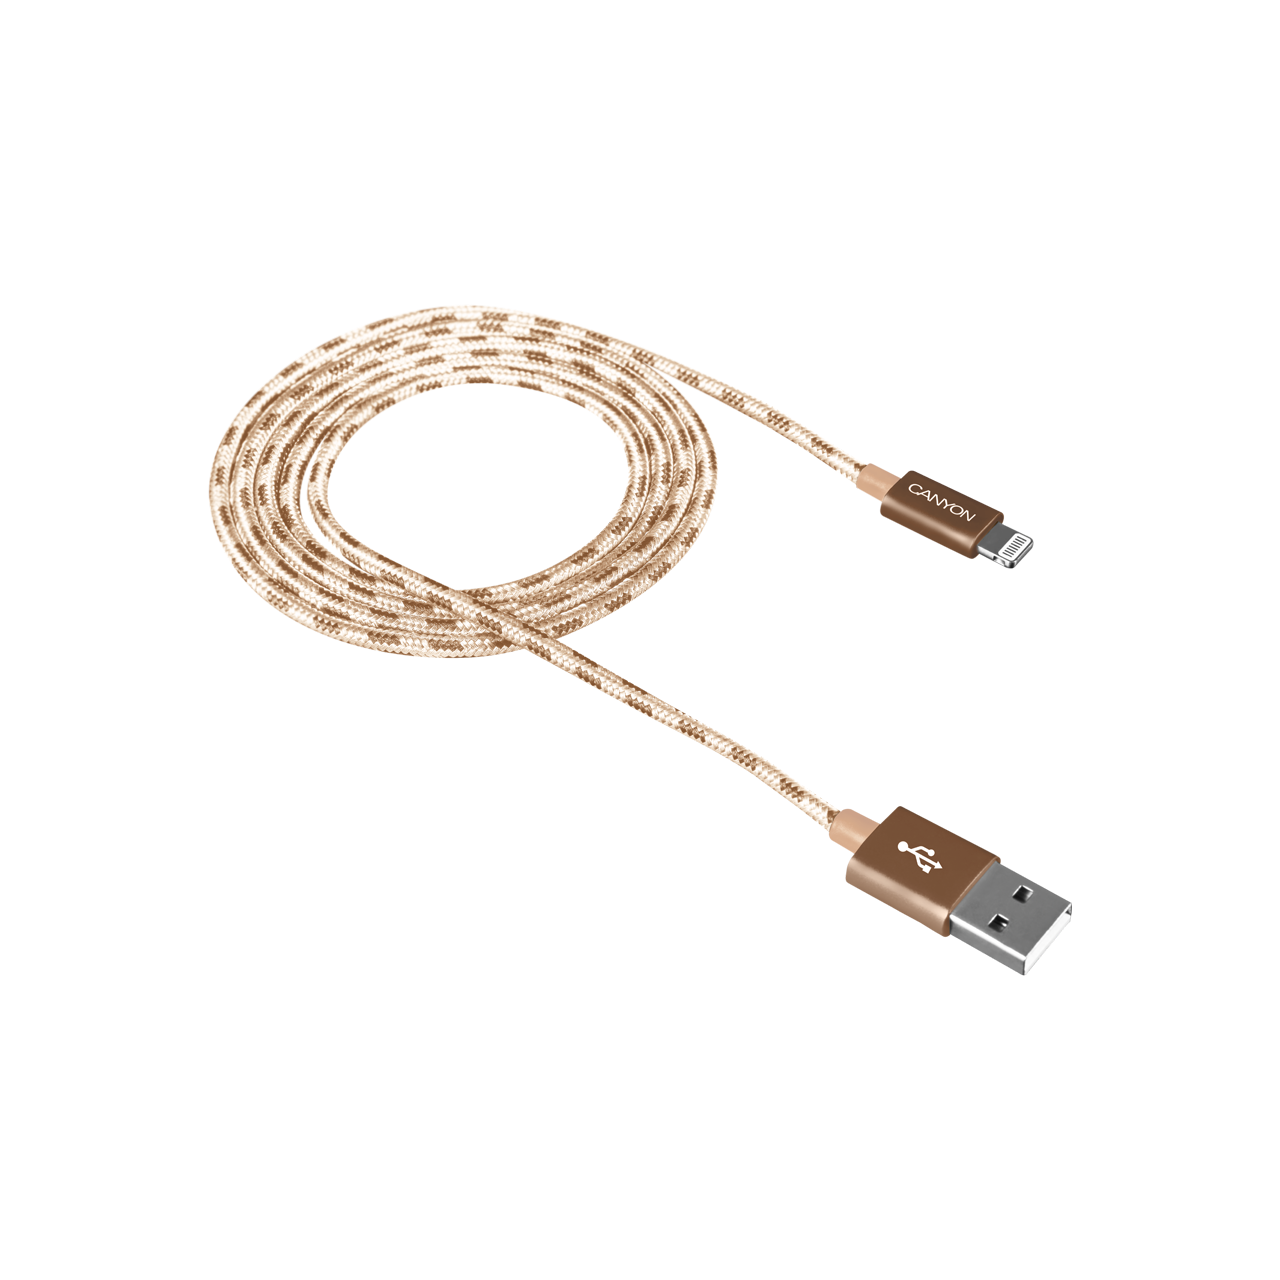 Braided 8 Pin Lightning Usb Cable For Iphone Cne Cfi3go